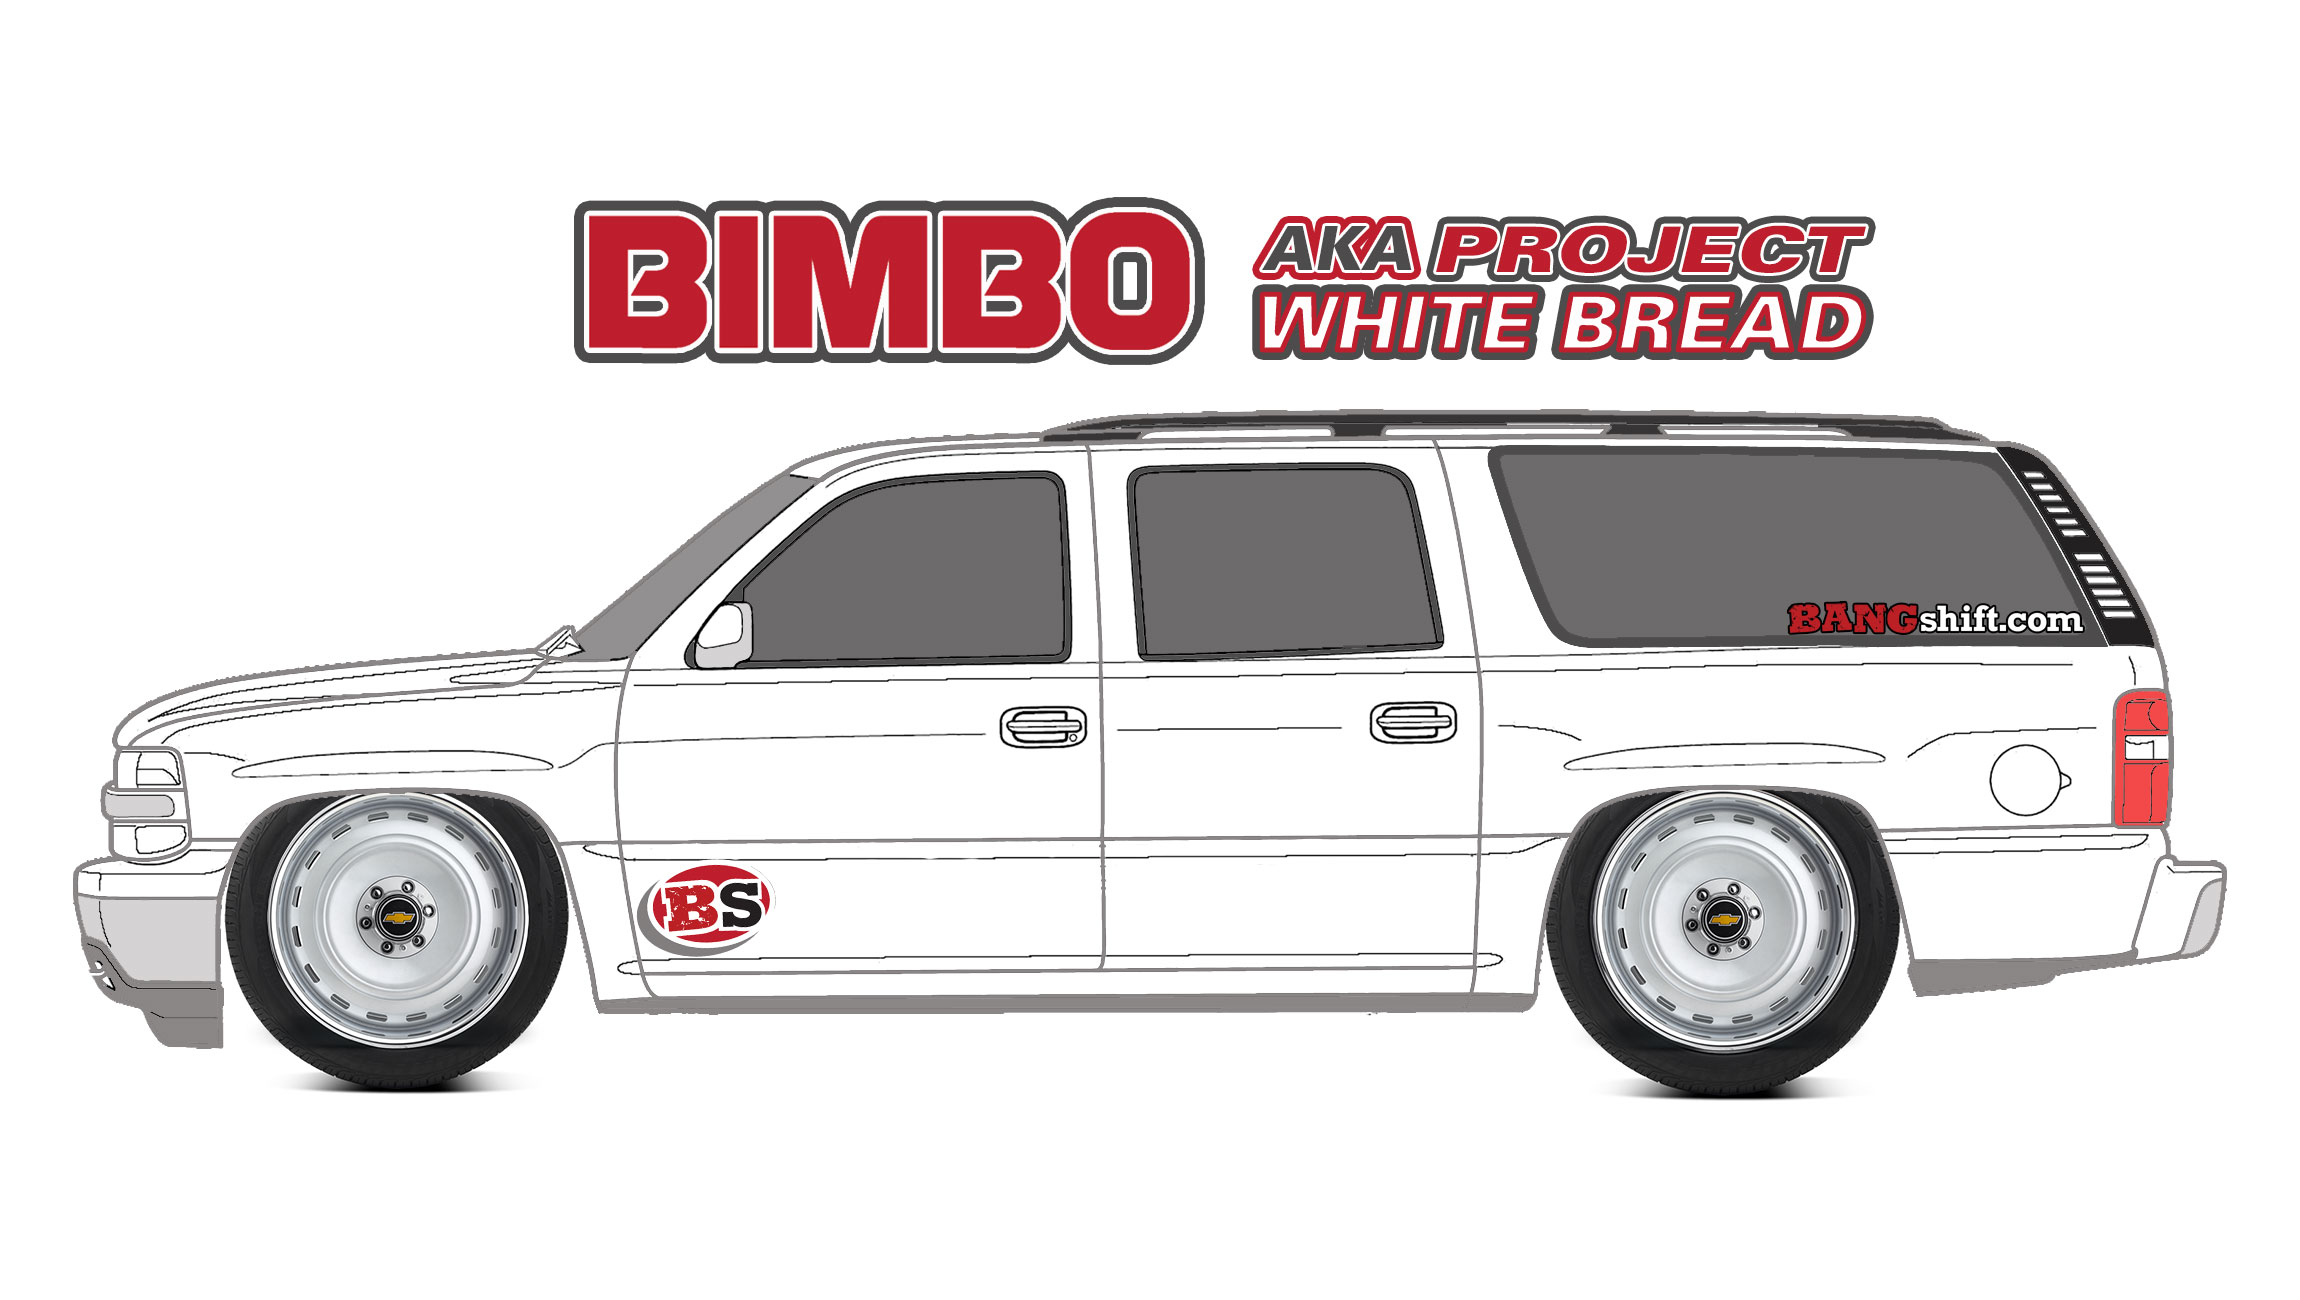 Introducing BIMBO, AKA Project White Bread, Our New Tow Pig Chevrolet Suburban